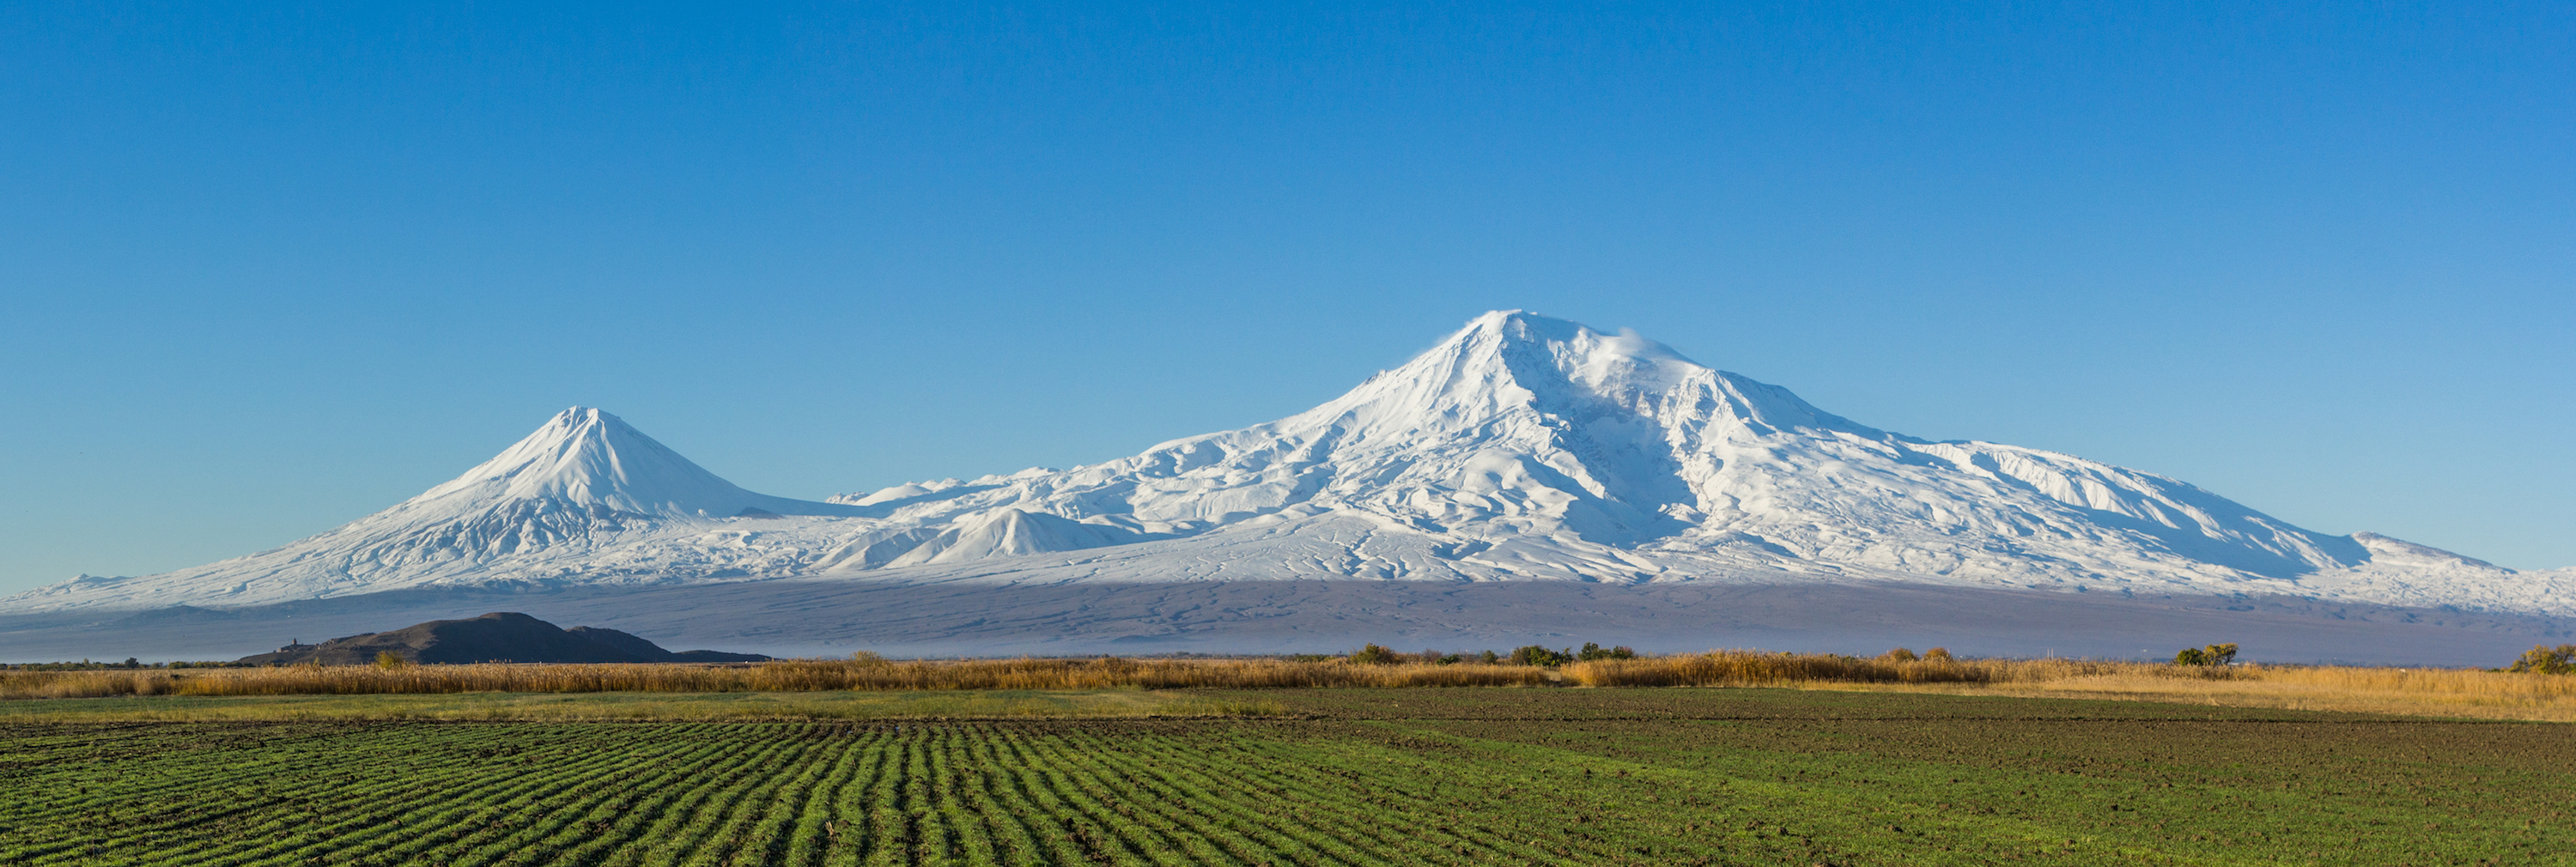 Mount Ararat, Turkey, and the Araratian plain, Armenia